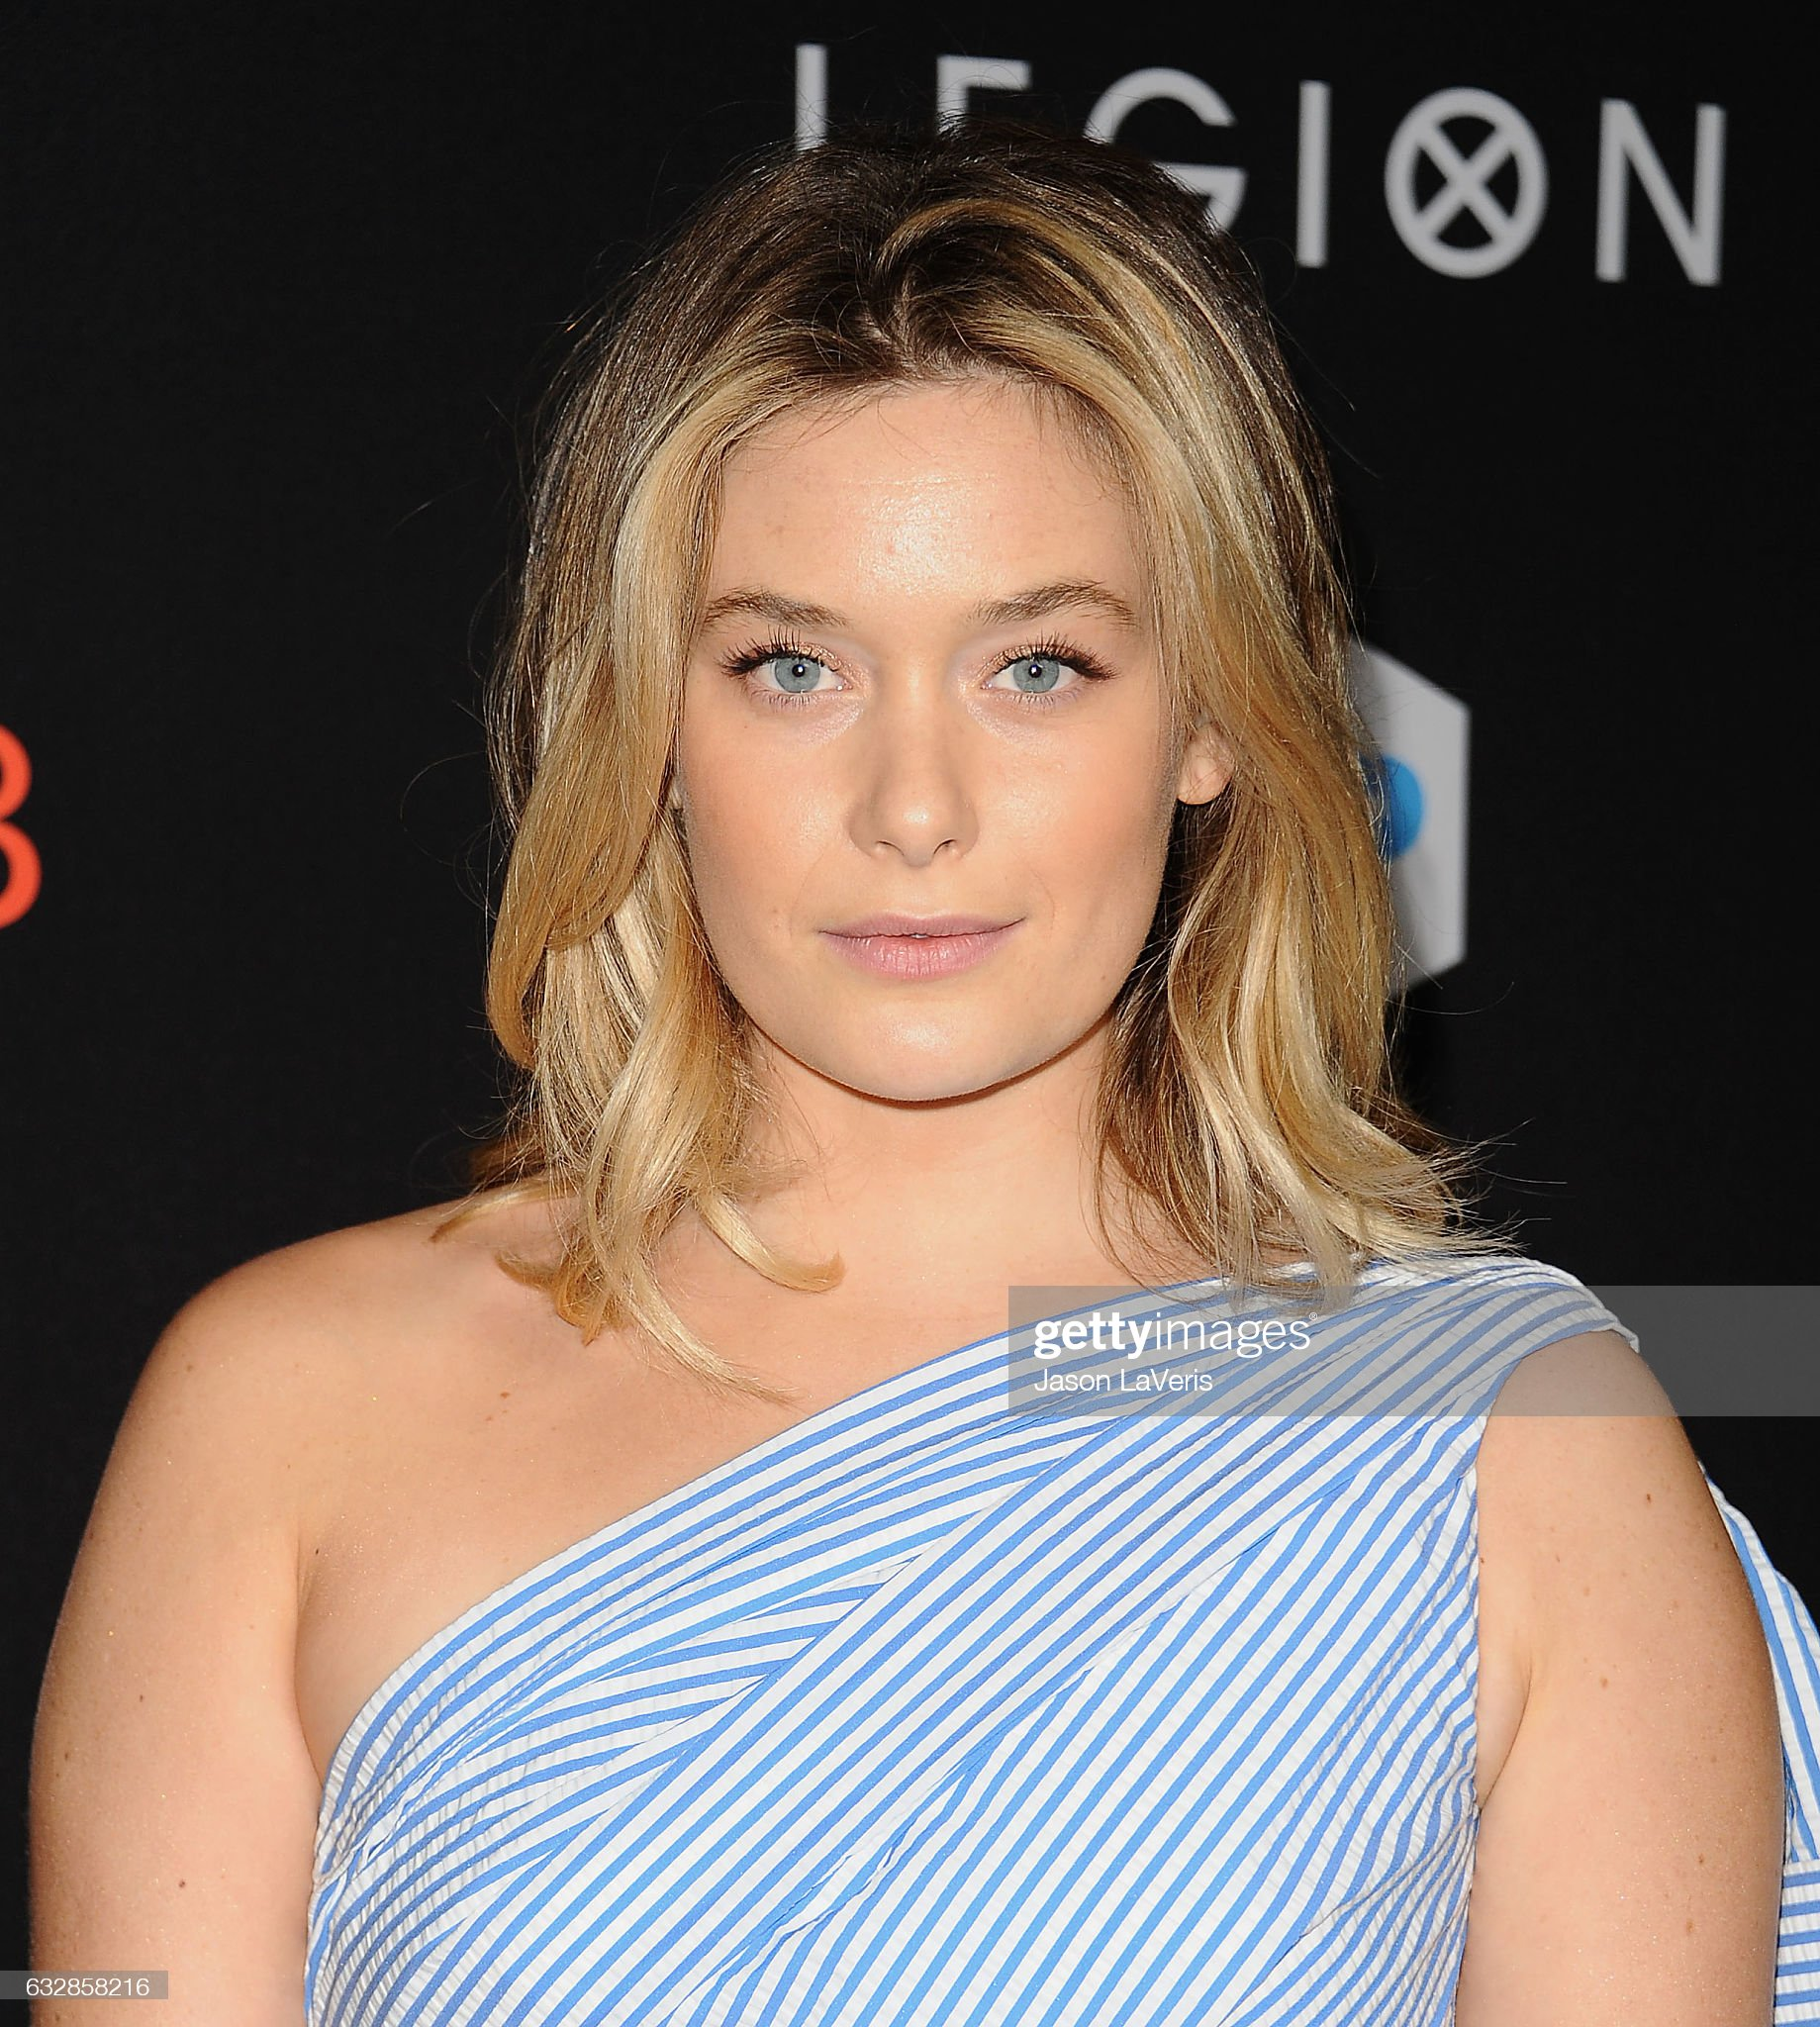 ¿Cuánto mide Rachel Keller? - Real height Actress-rachel-keller-attends-the-premiere-of-legion-at-pacific-on-picture-id632858216?s=2048x2048